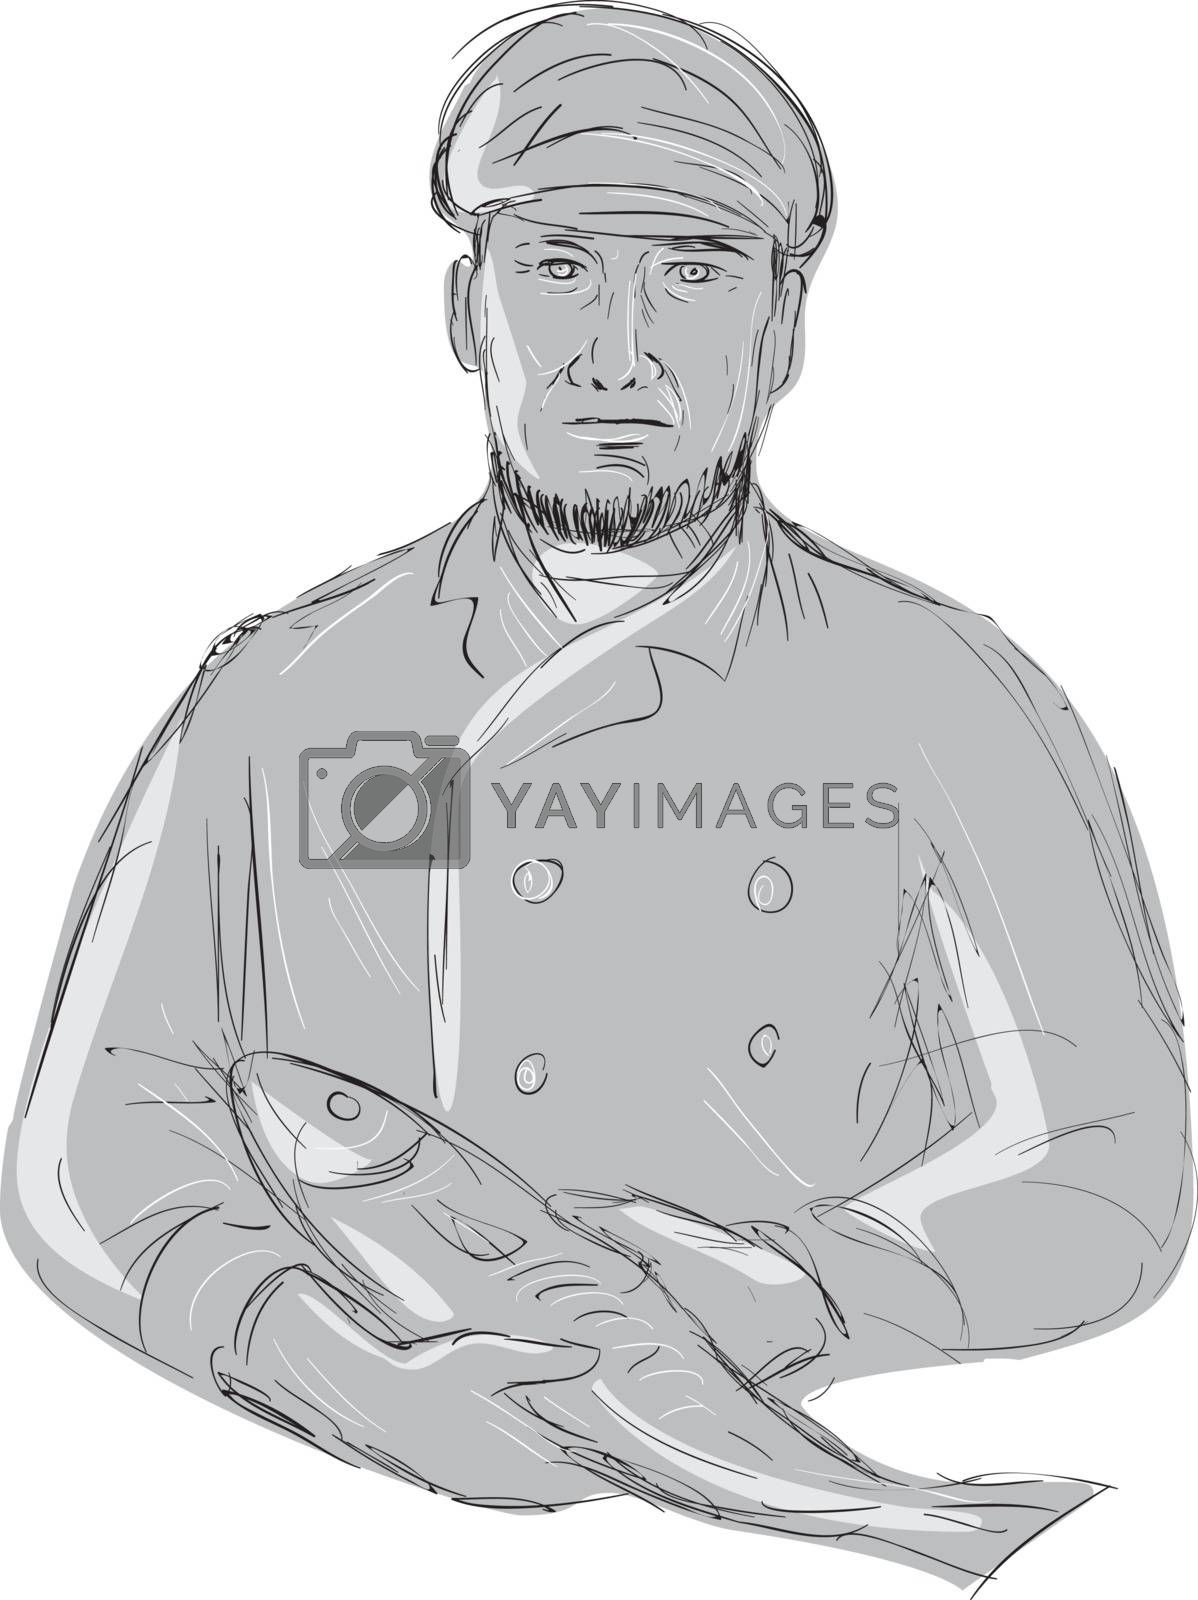 Illustration of a Vintage Fishmonger wearing cap Holding Fish front view done in hand sketch Drawing style.